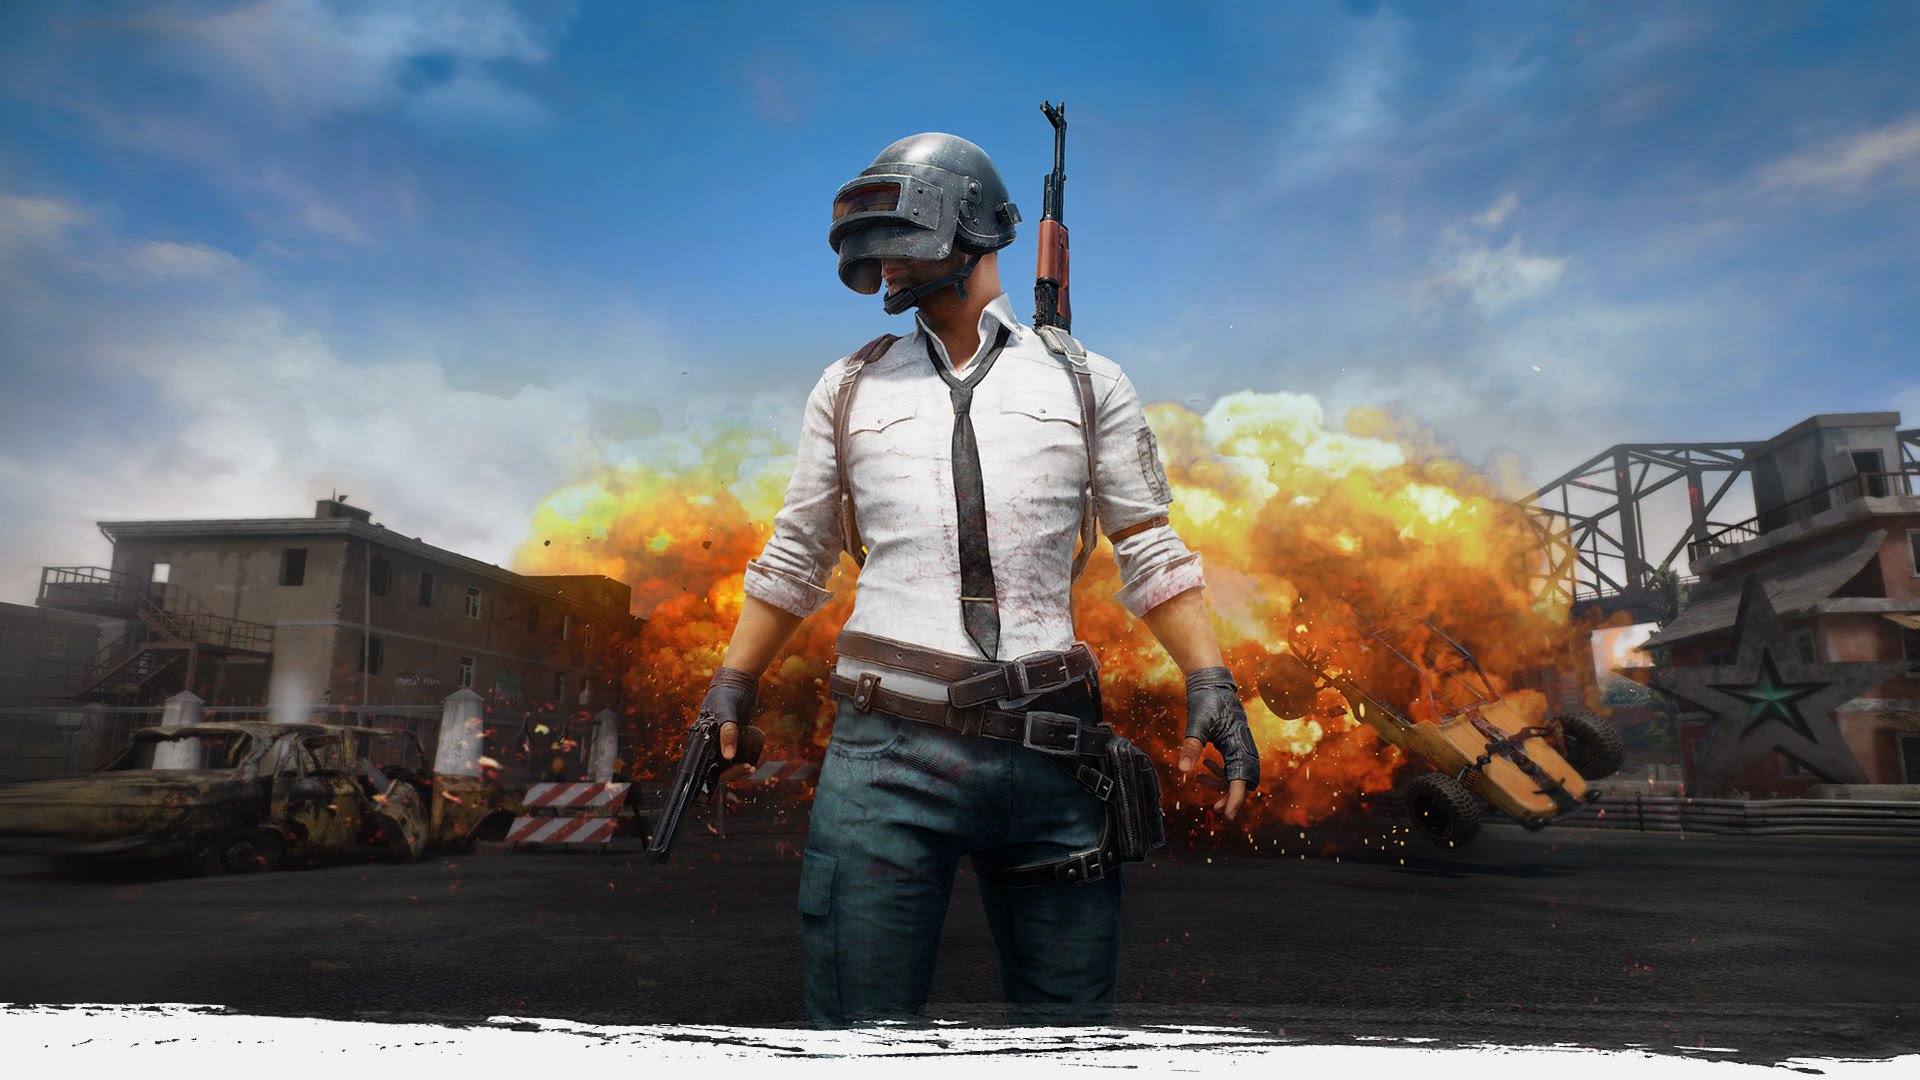 50M Units Sold with 400M Players Worldwide + Sanhok Release - PlayerUnknown's Battlegrounds